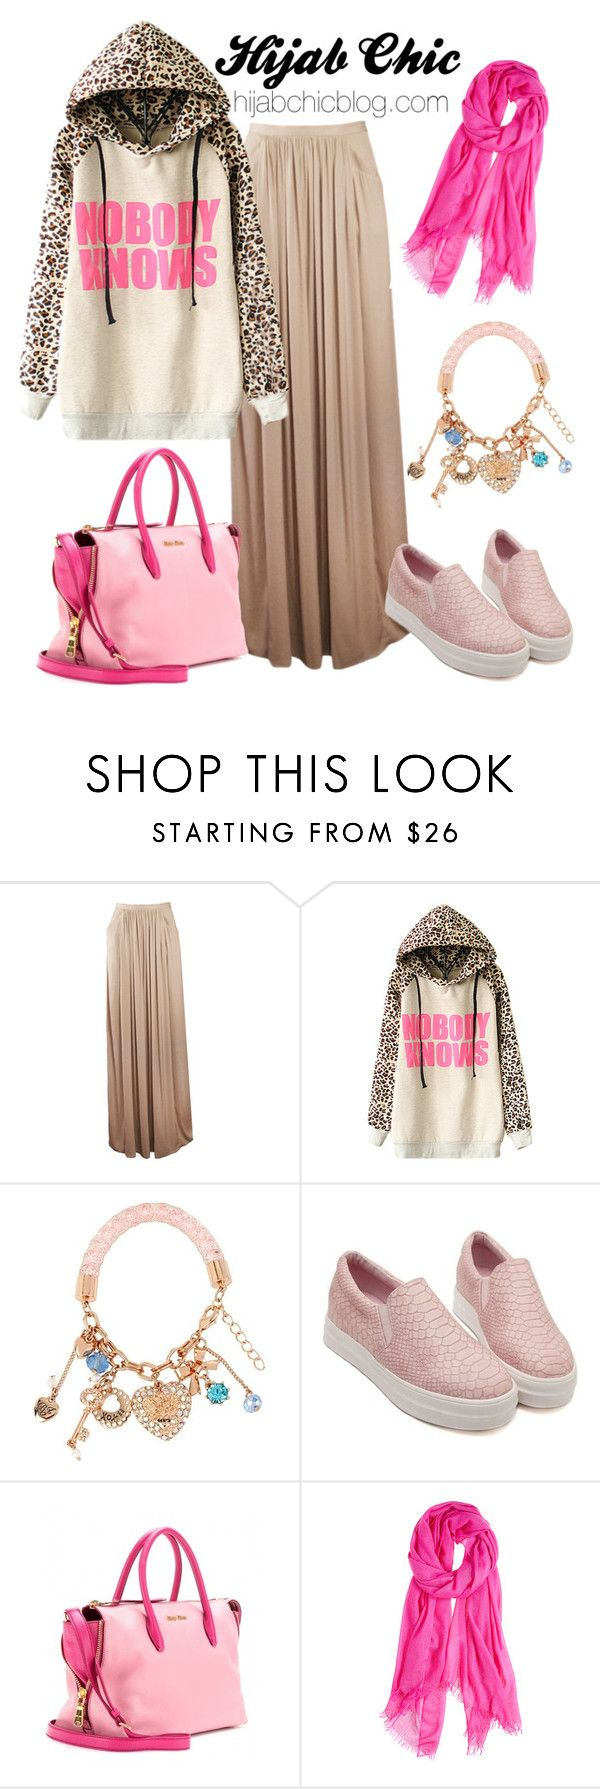 """""""hijabchicblog.com"""" by hijab-chic on Polyvore featuring Betsey Johnson, Miu Miu and Calypso Private Label"""